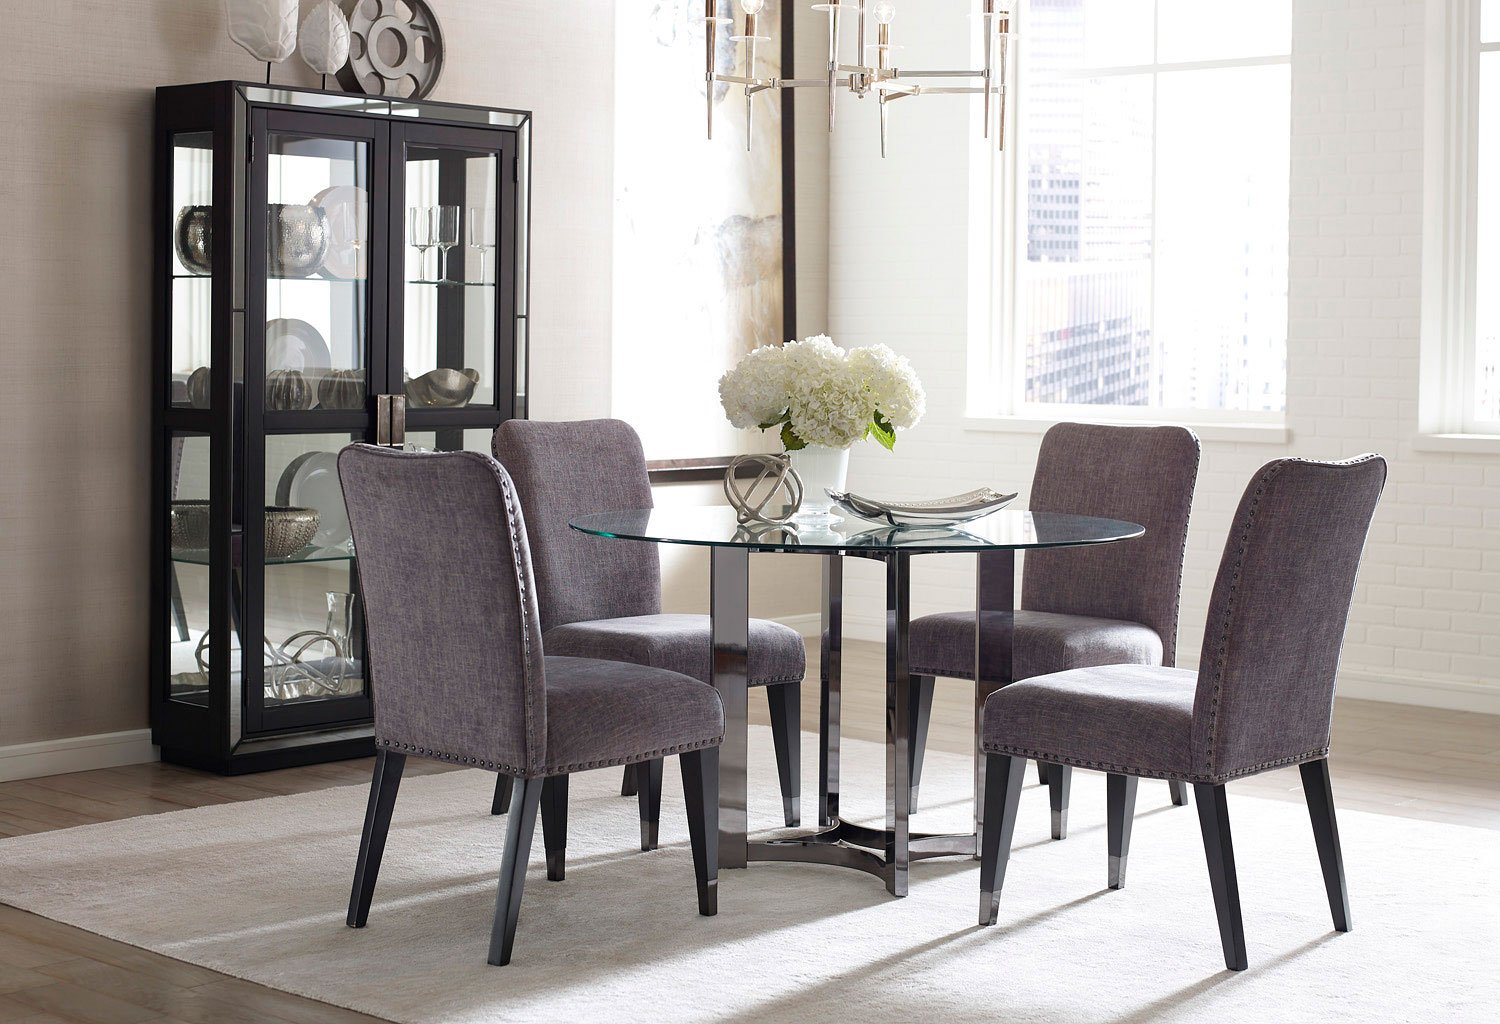 Silverton Sound Round Dining Room Set Casual Dining Sets Dining Room And Kitchen Furniture